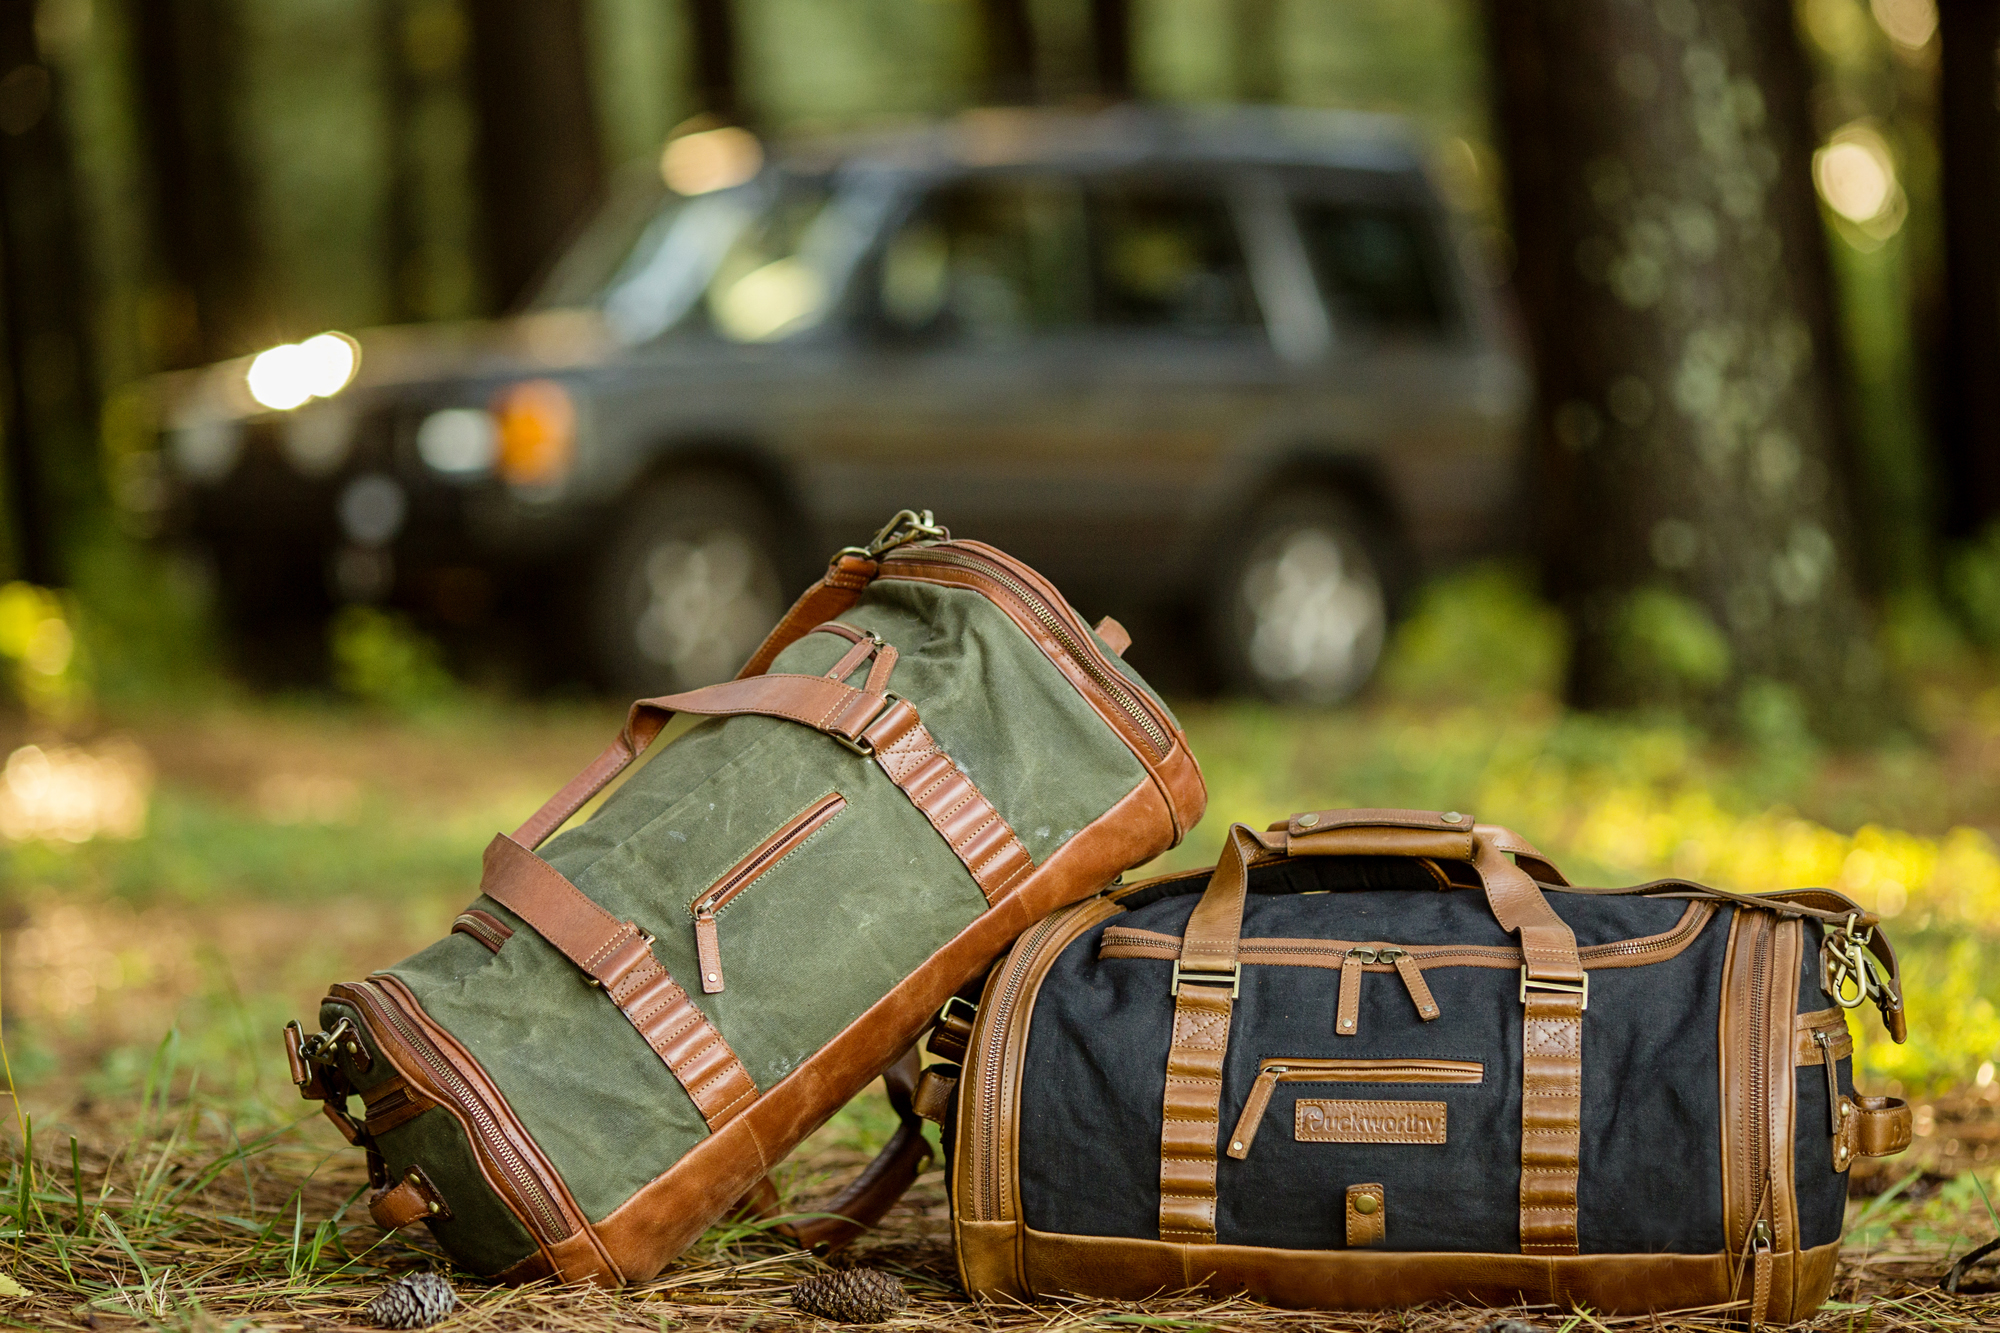 Seriously_Sabrina_Photography_Commercial_Brand_Duckworthy_Goods_July_2018_14.jpg